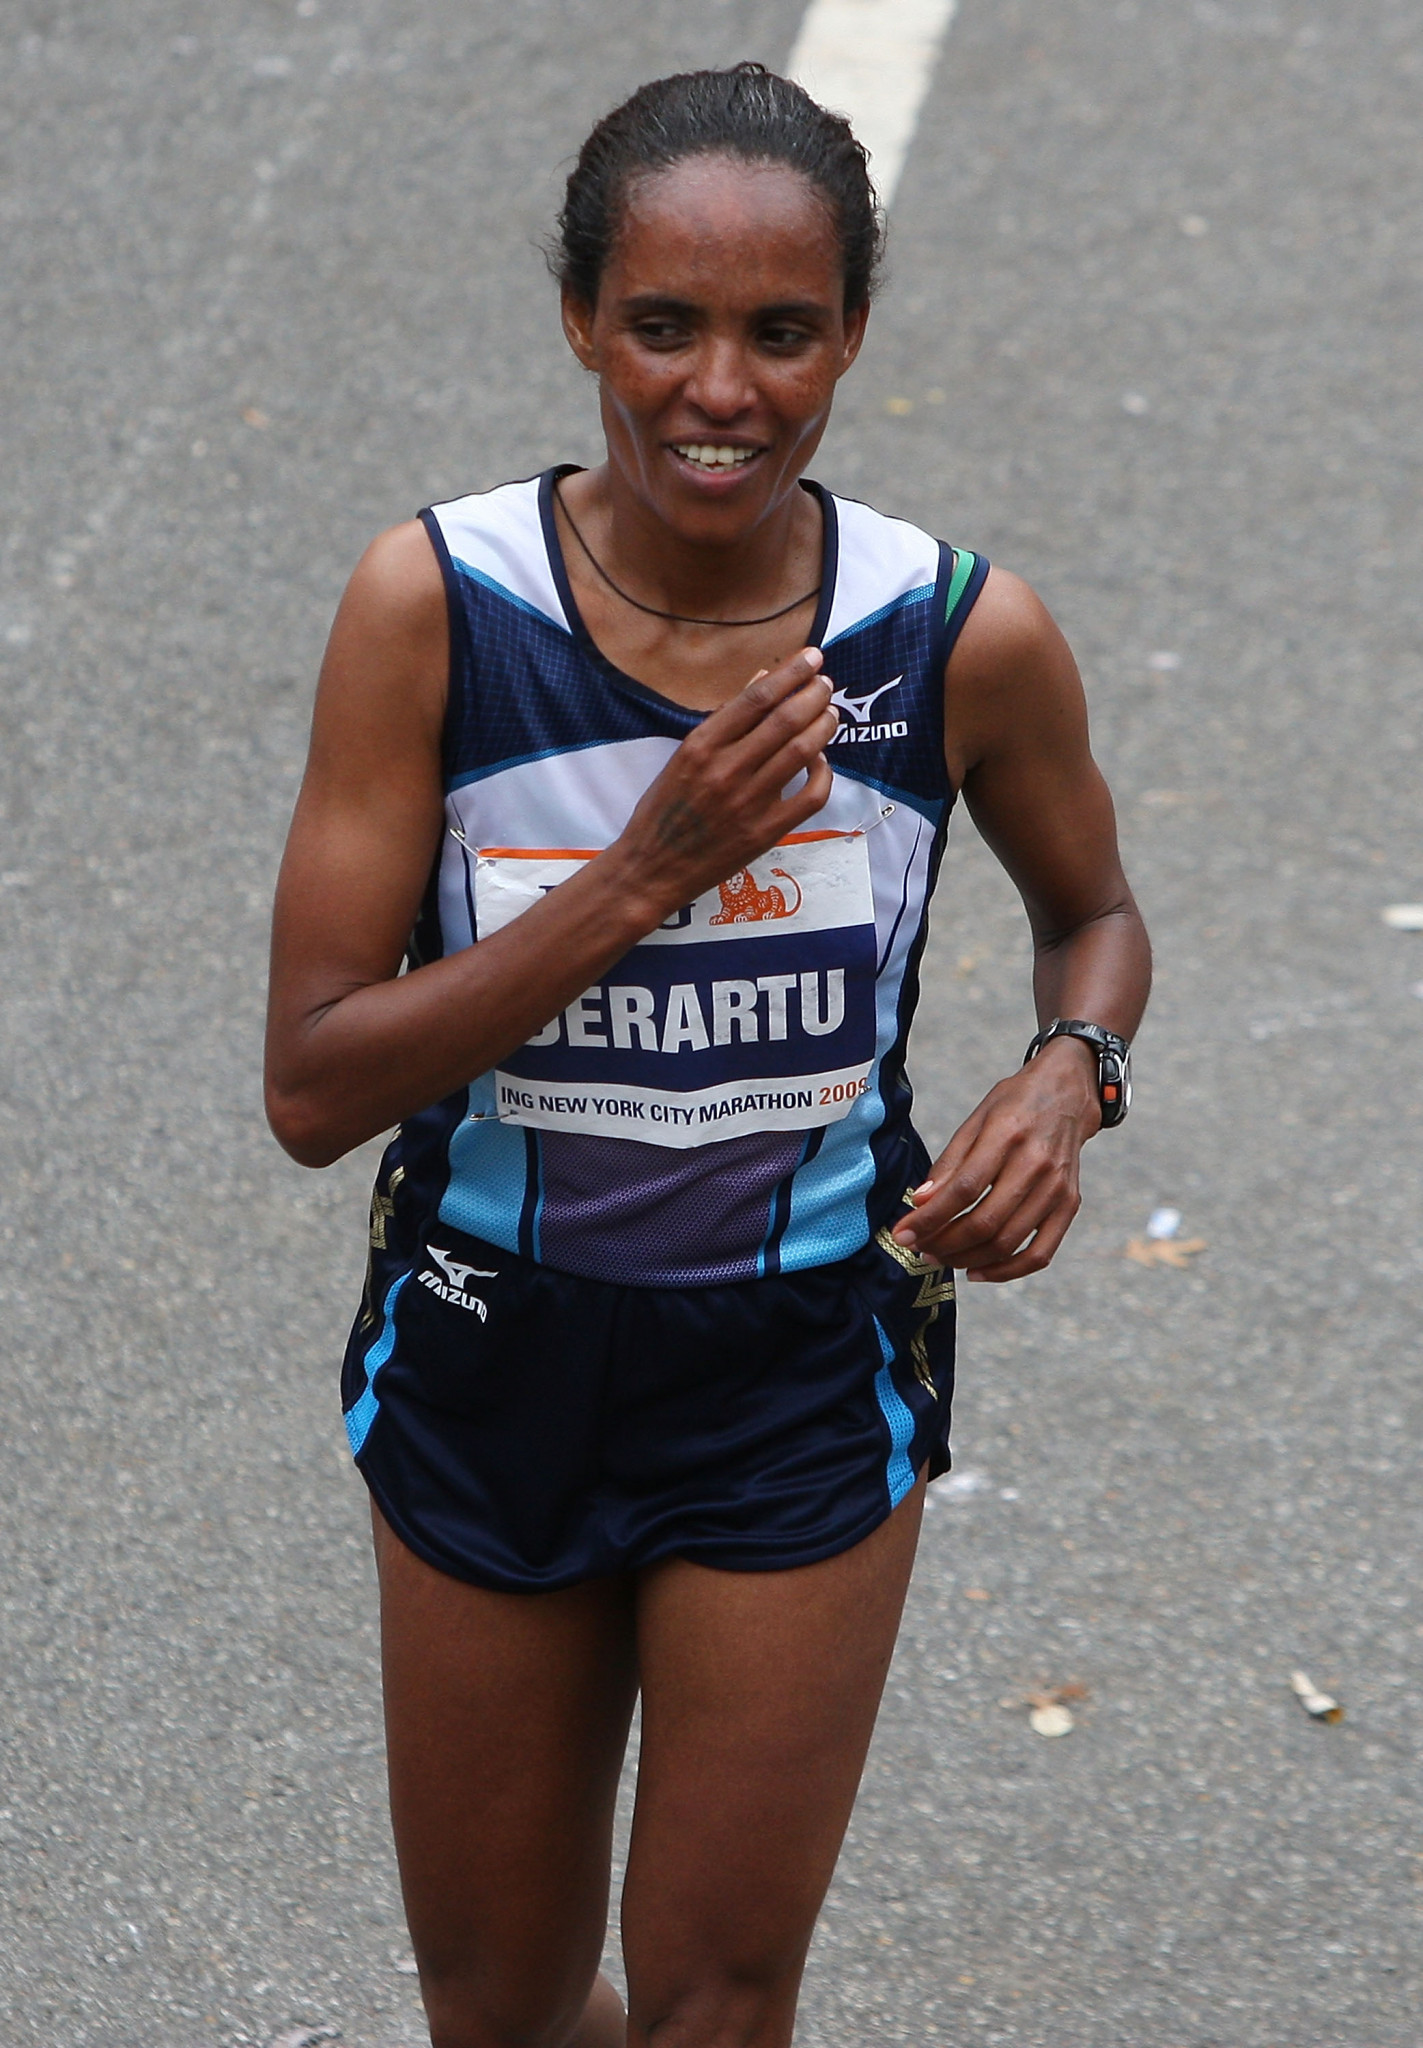 Double Olympic 10,000m champion Derartu Tulu, pictured winning the women's title at the 2009 New York City marathon, will take over the Presidency of the Ethiopian Athletics Federation following Haile Gebrselassie's resignation ©Getty Images